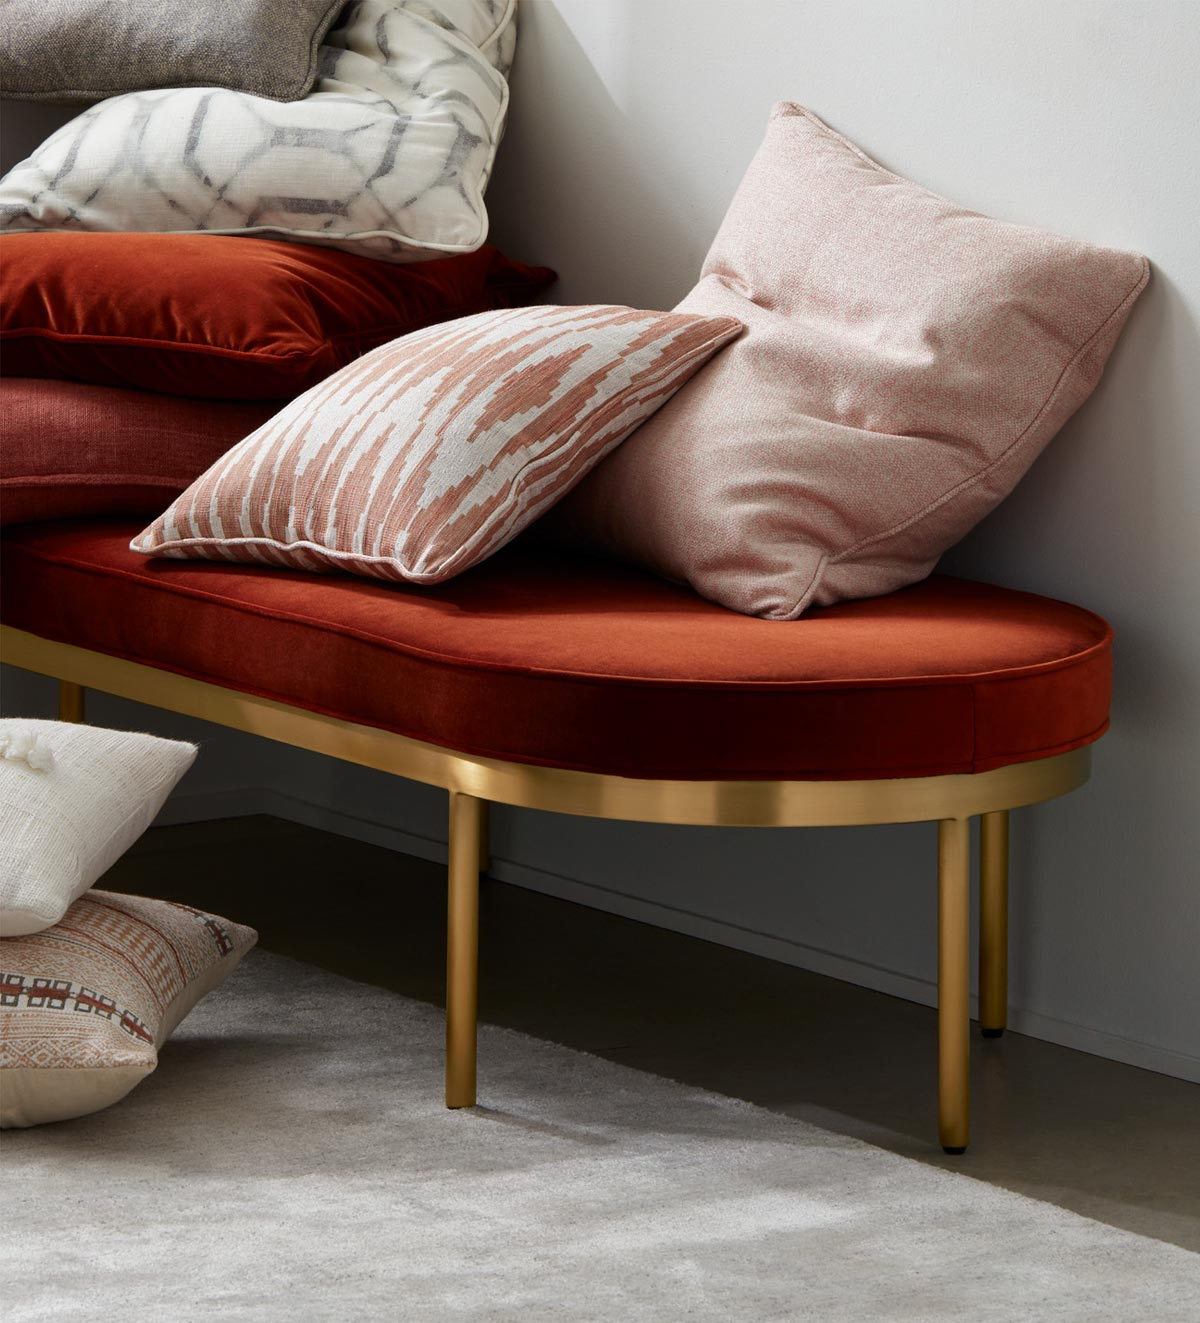 Shop Ottoman and Benches imagery